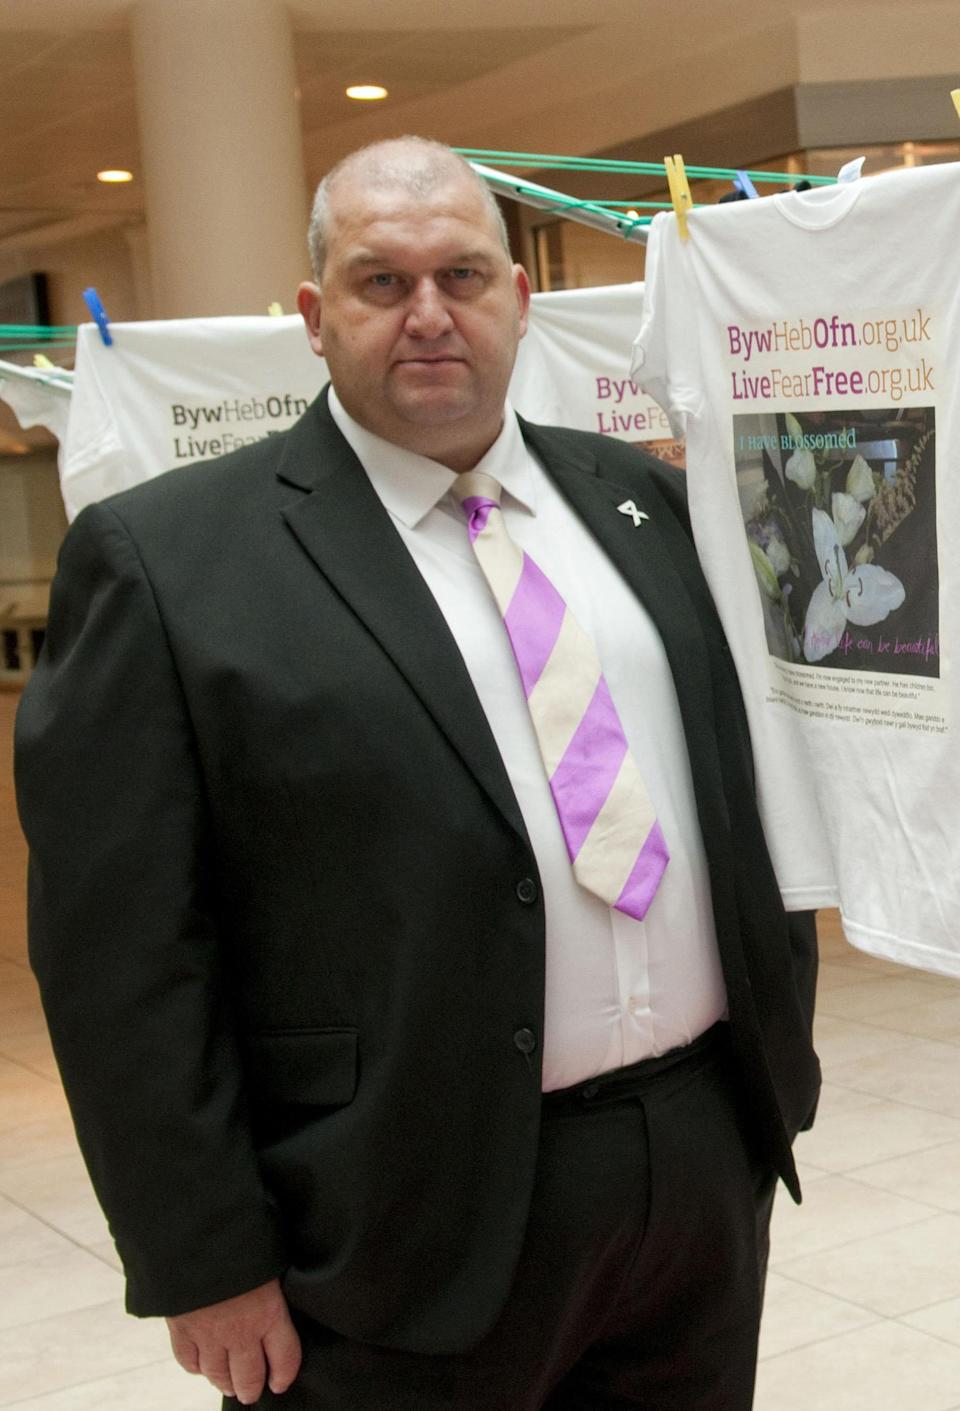 <em>Carl Sargeant lost his Welsh Government role and was suspended by the party following allegations about his 'personal conduct' (Picture: PA)</em>